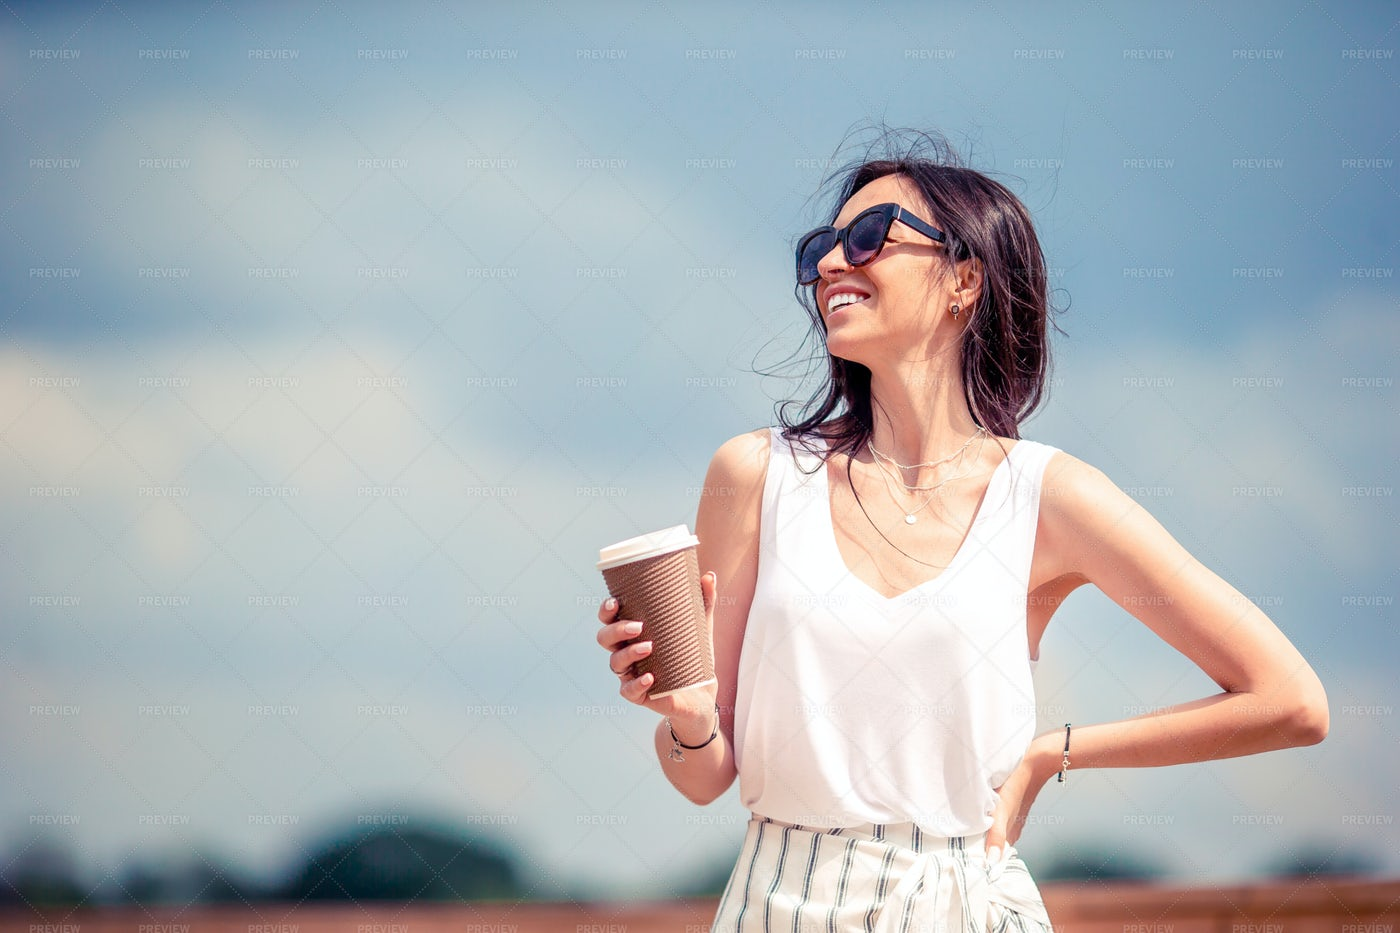 Coffee During Summer: Stock Photos